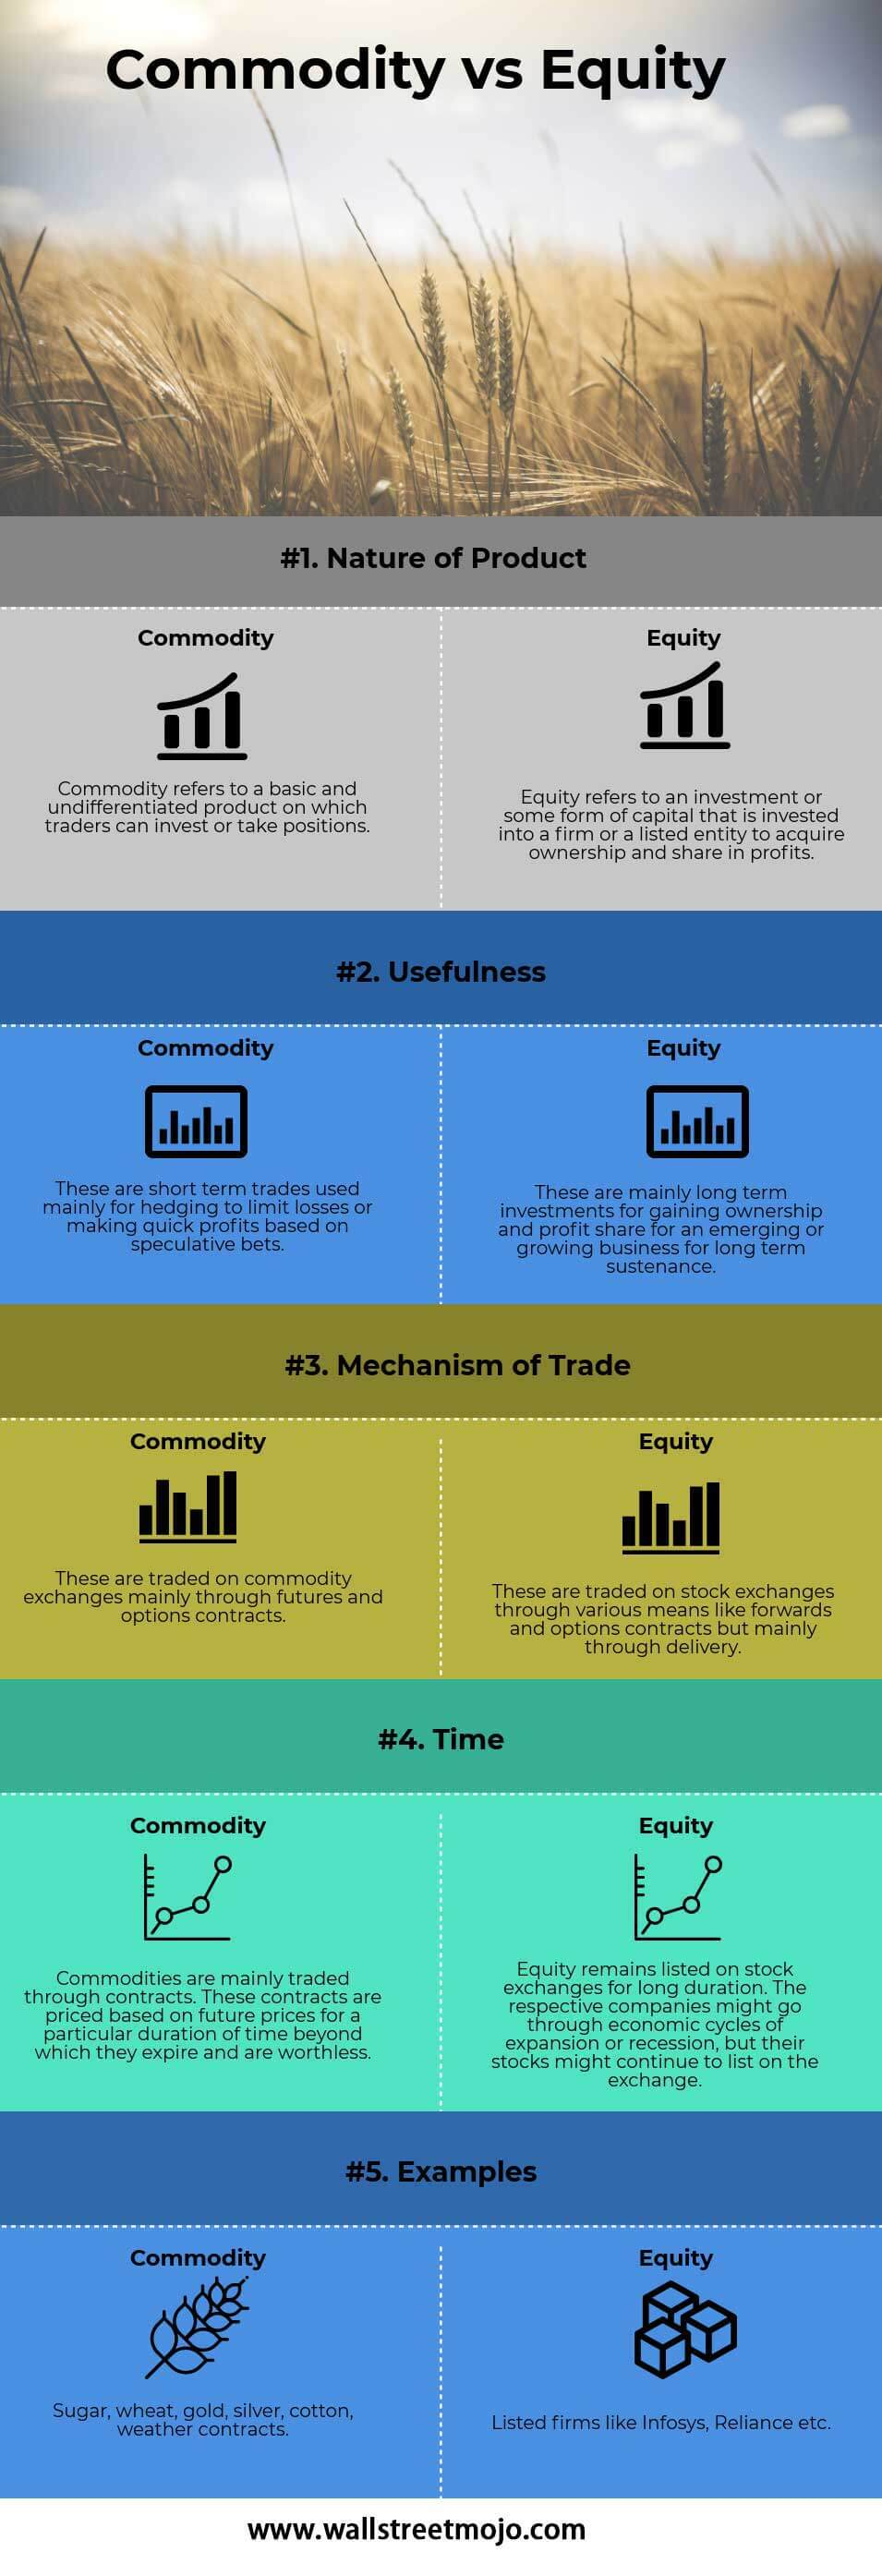 Commodity-vs-Equity-info